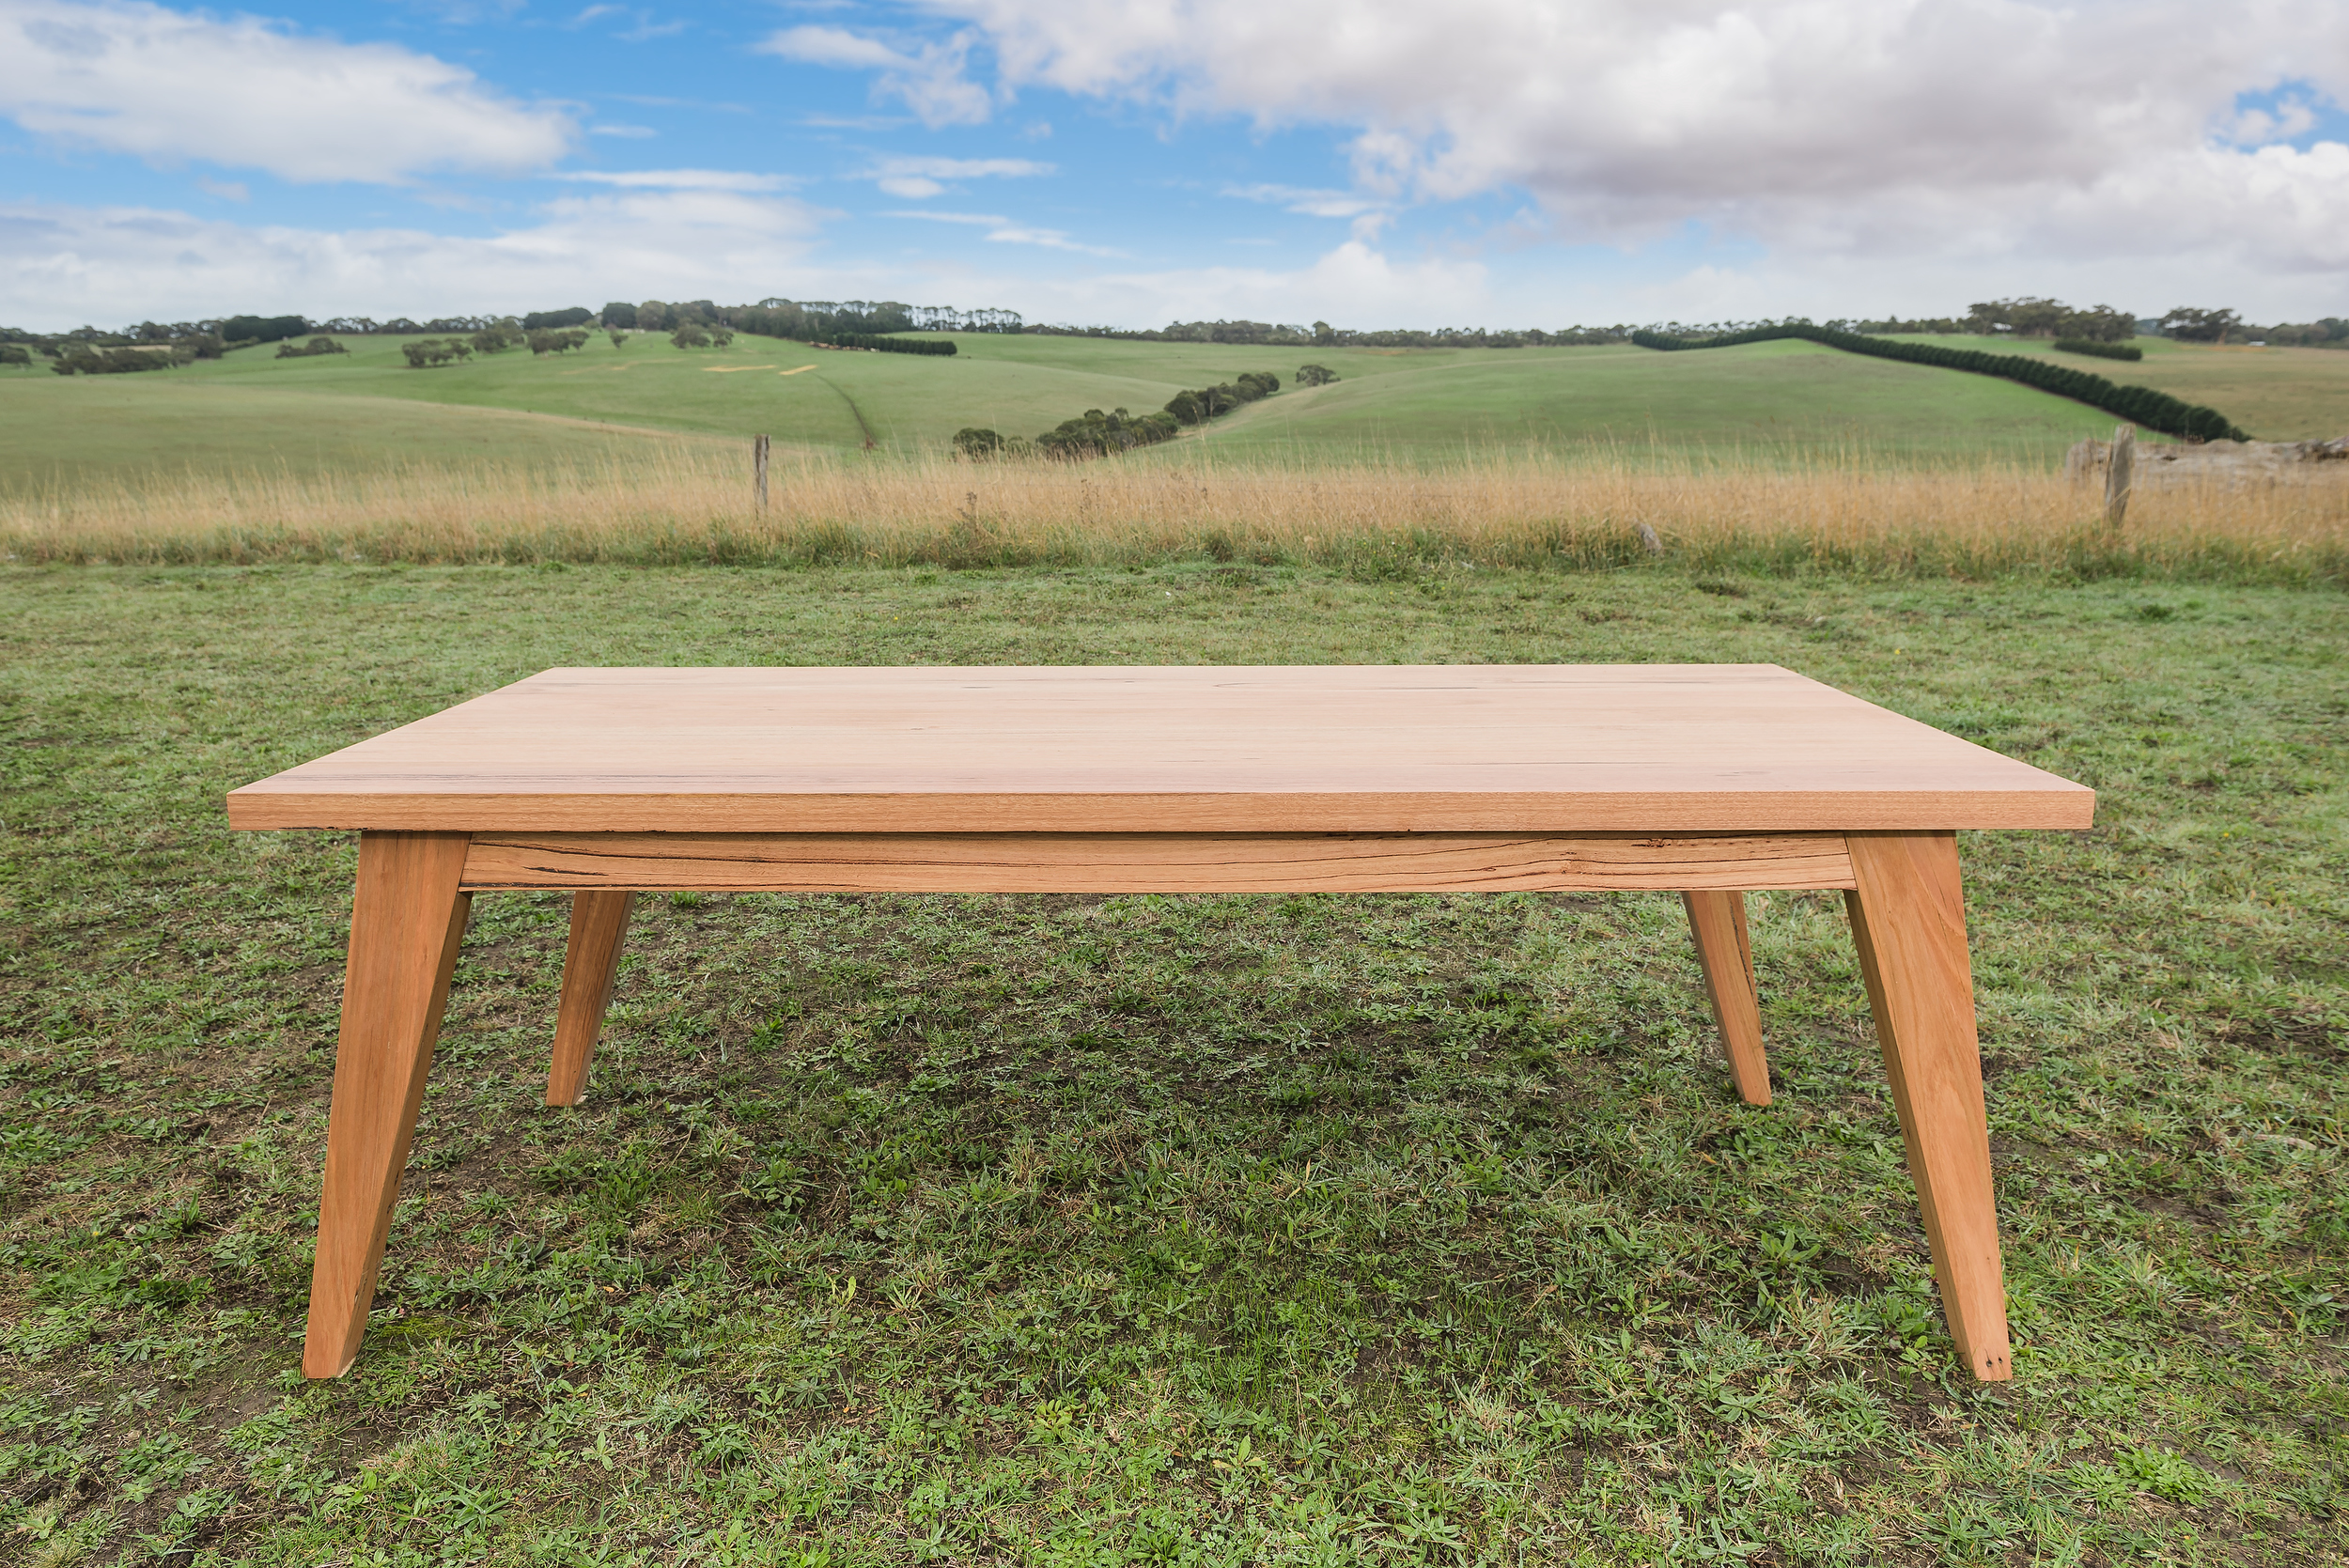 Simple handmade timber table